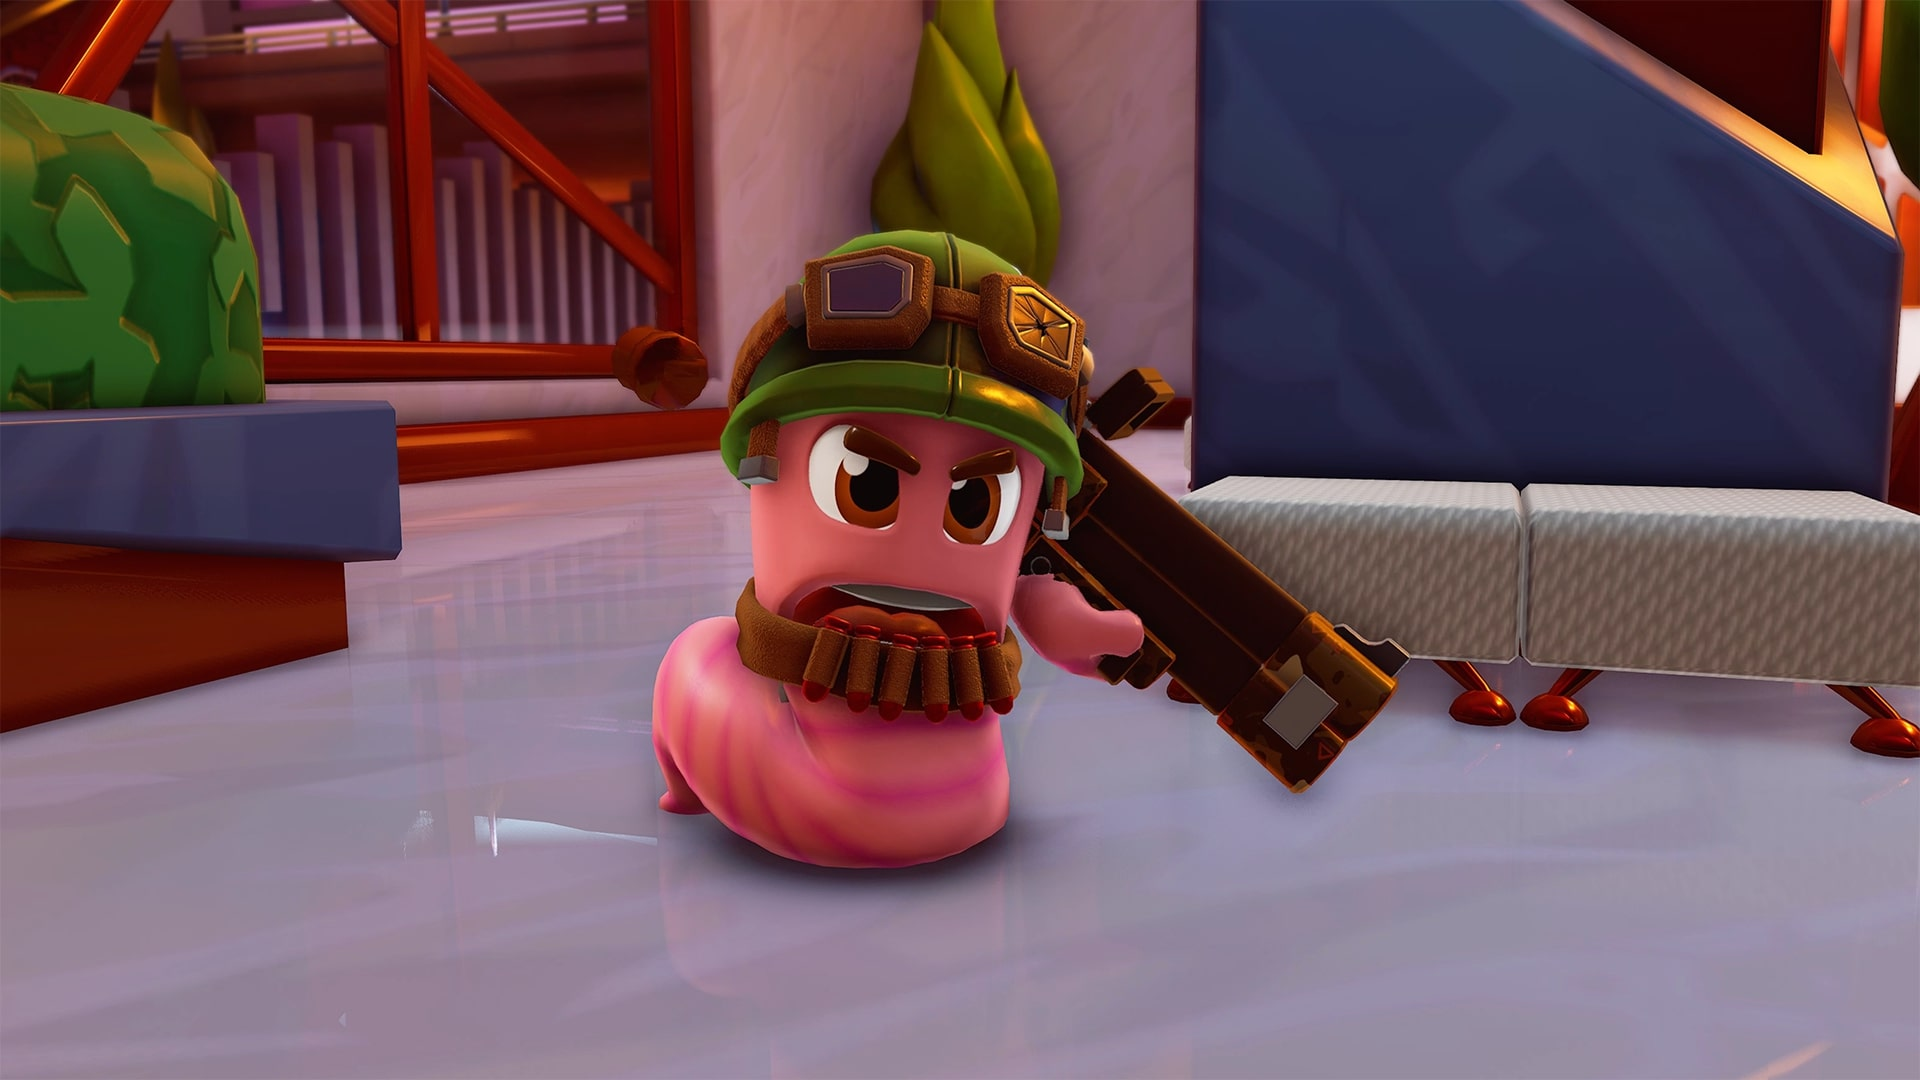 Worms Rumble — Is it worth it?